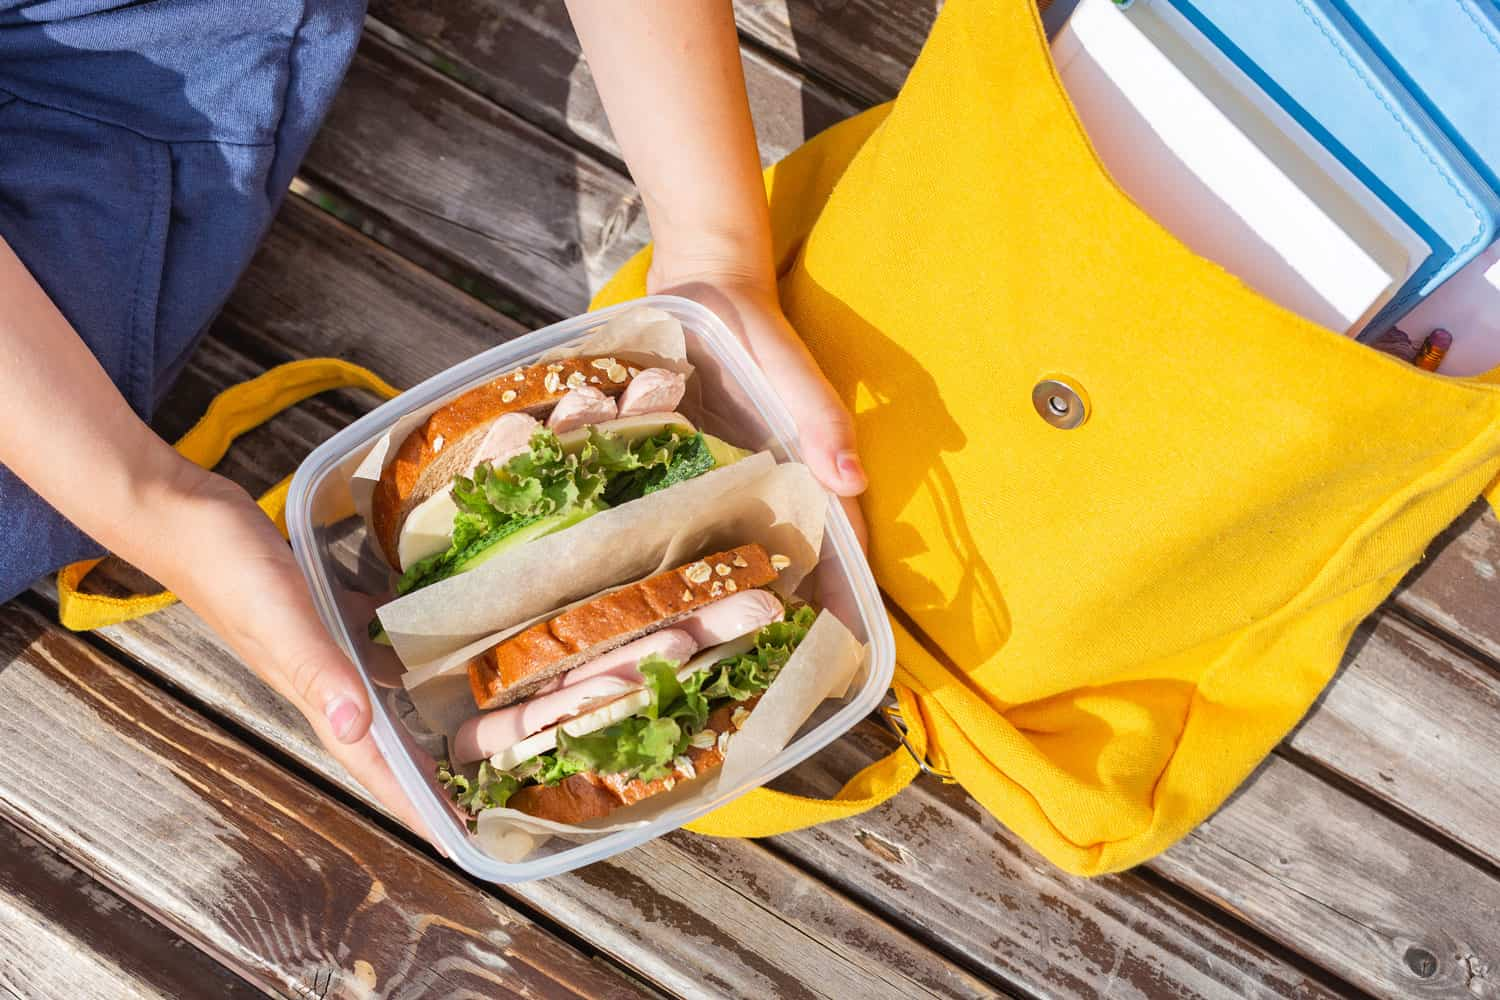 Lunch box in the hands of a child. Sandwiches with bread, lettuce, cucumber and sausages in a plastic container, When Should You Replace Plastic Food Containers?